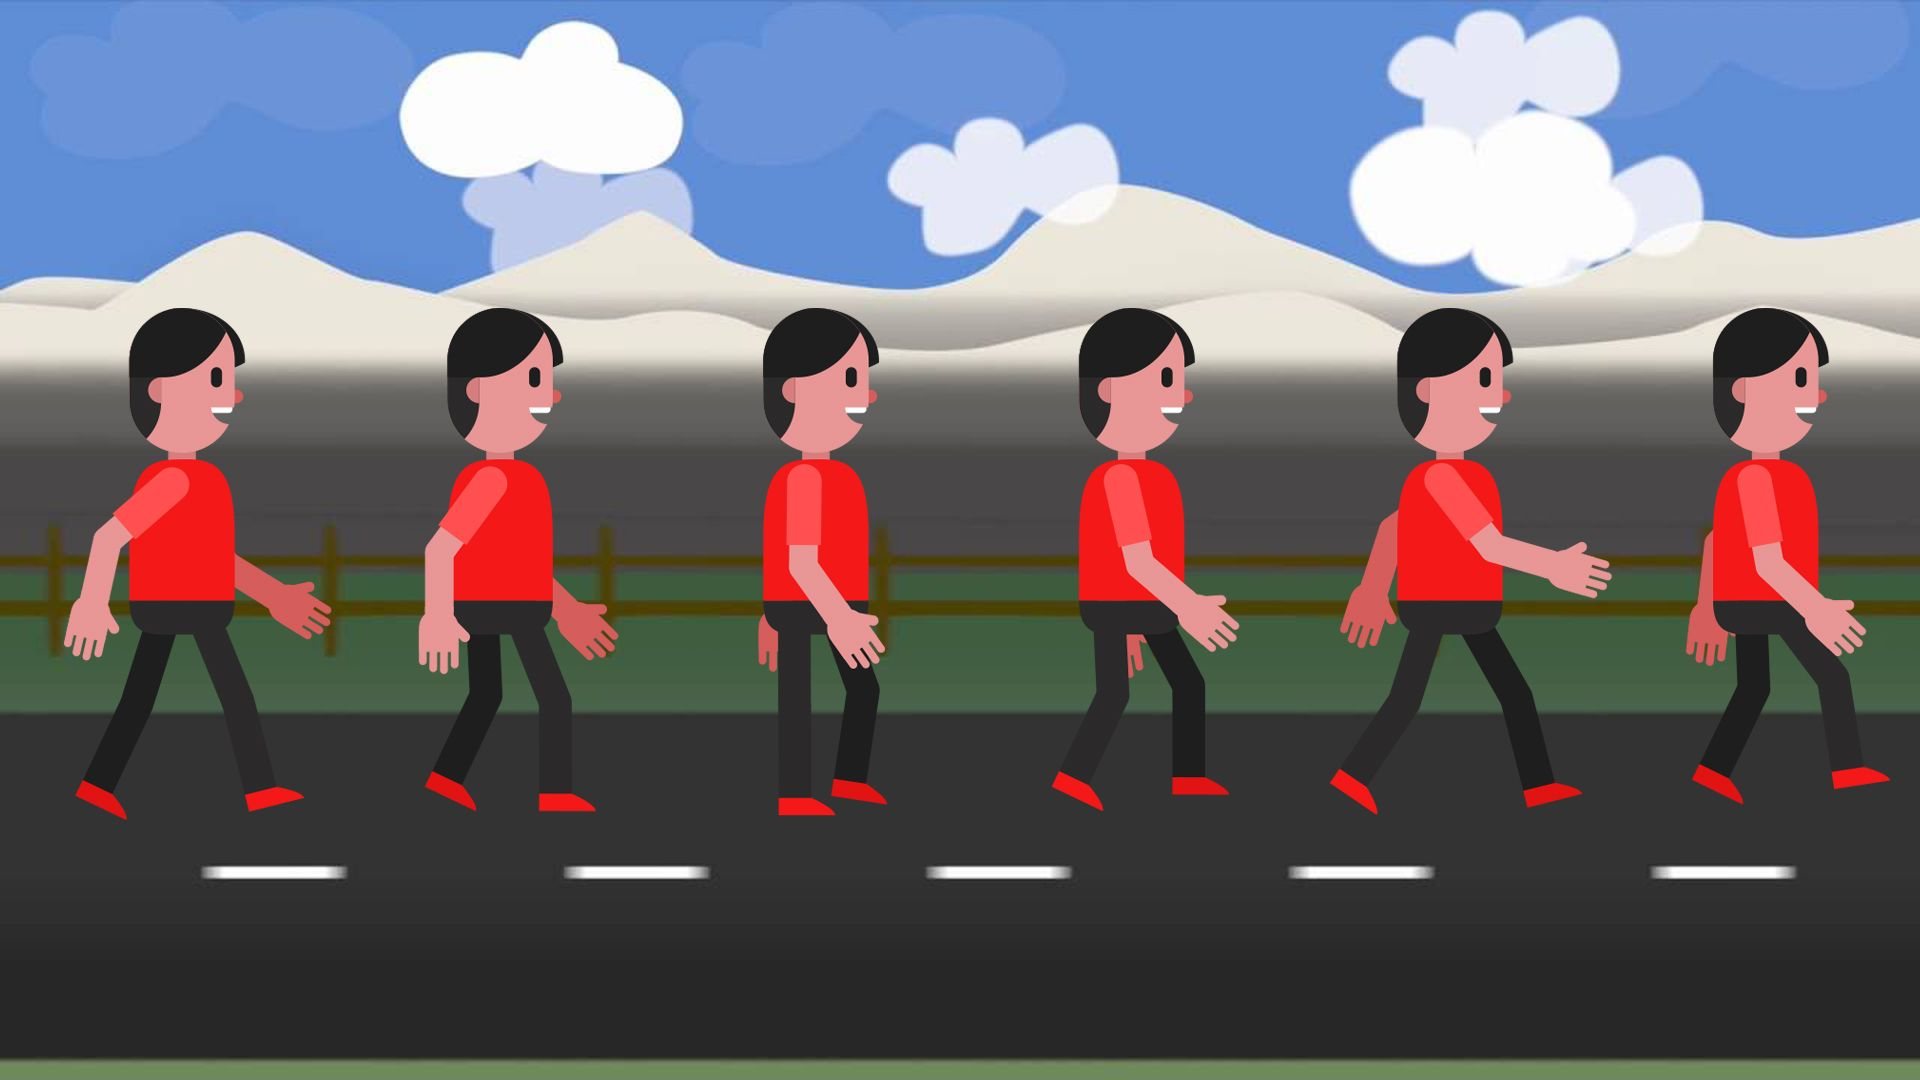 How To Make Animated Gif In Photoshop Cartoon Contribution Https